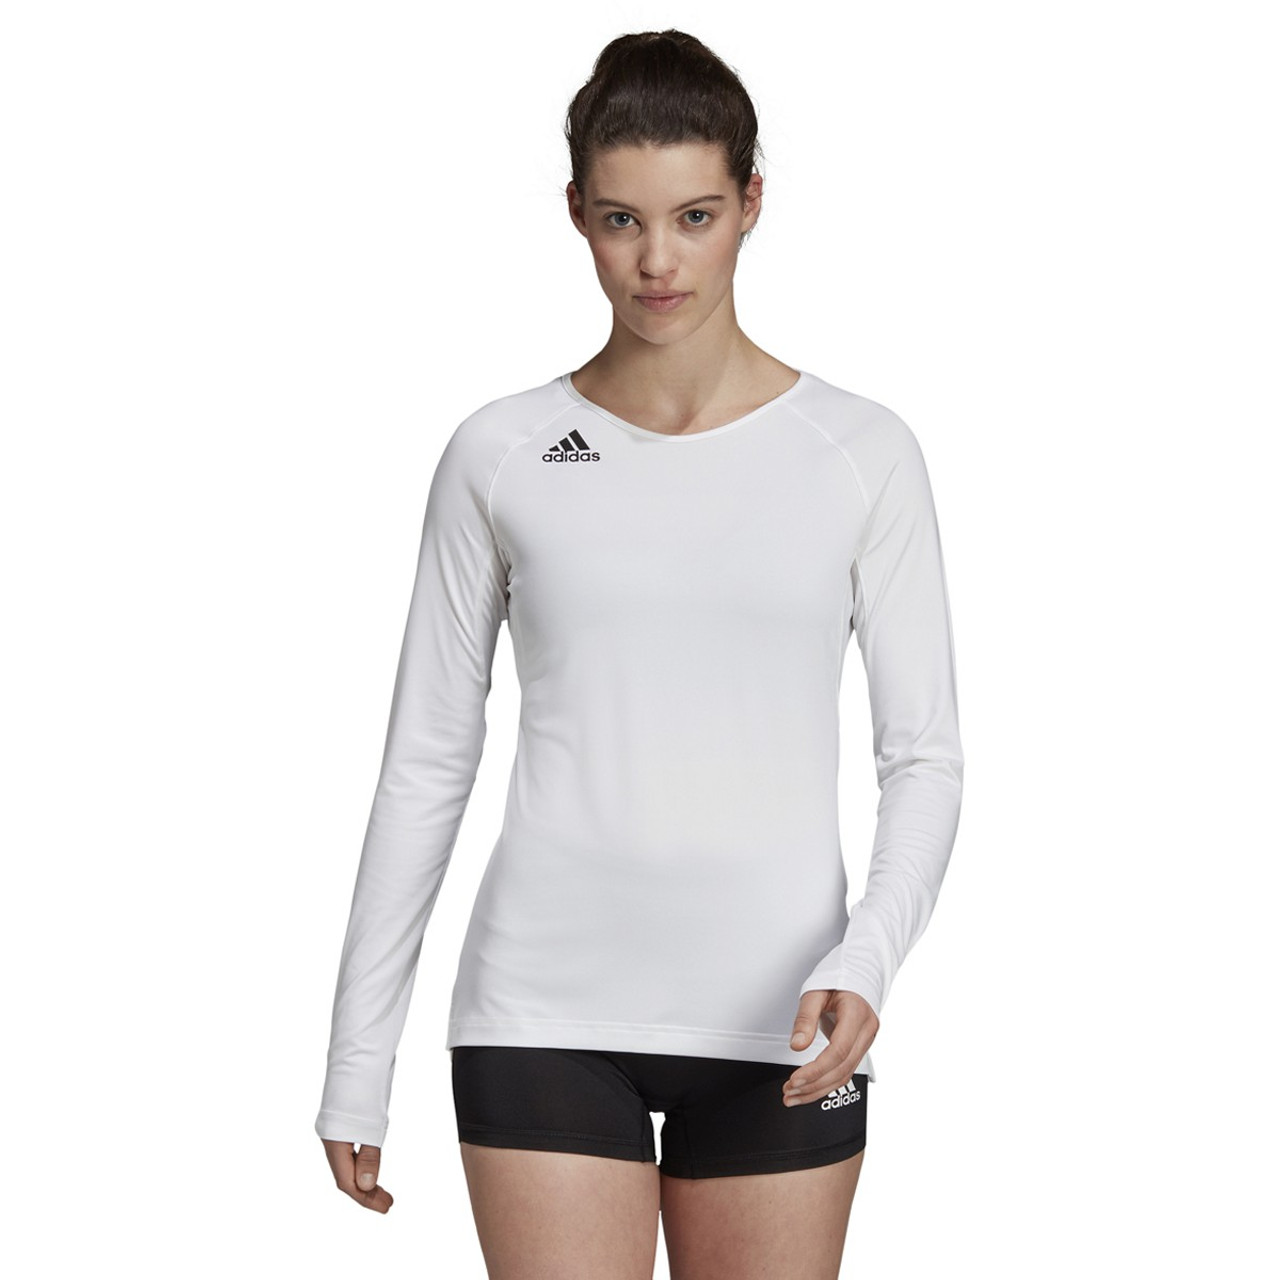 Adidas HILO Women's Long Sleeve Volleyball Jersey DX0888 - White